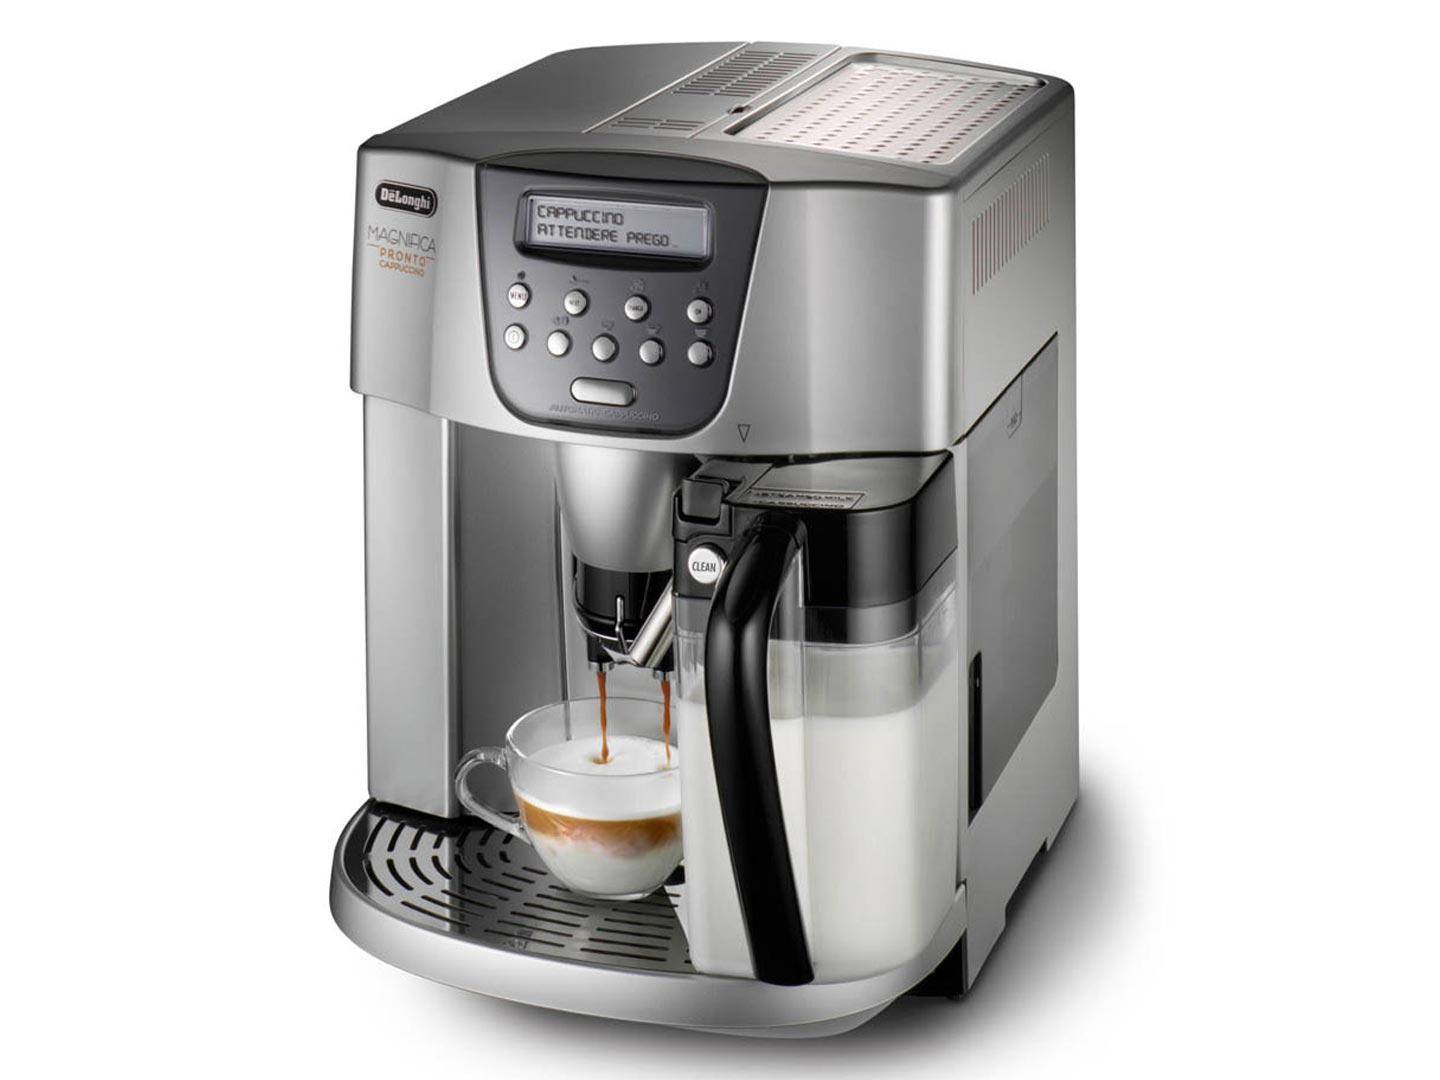 Delonghi - ESAM4500 - Magnifica Pronto Coffee Machine